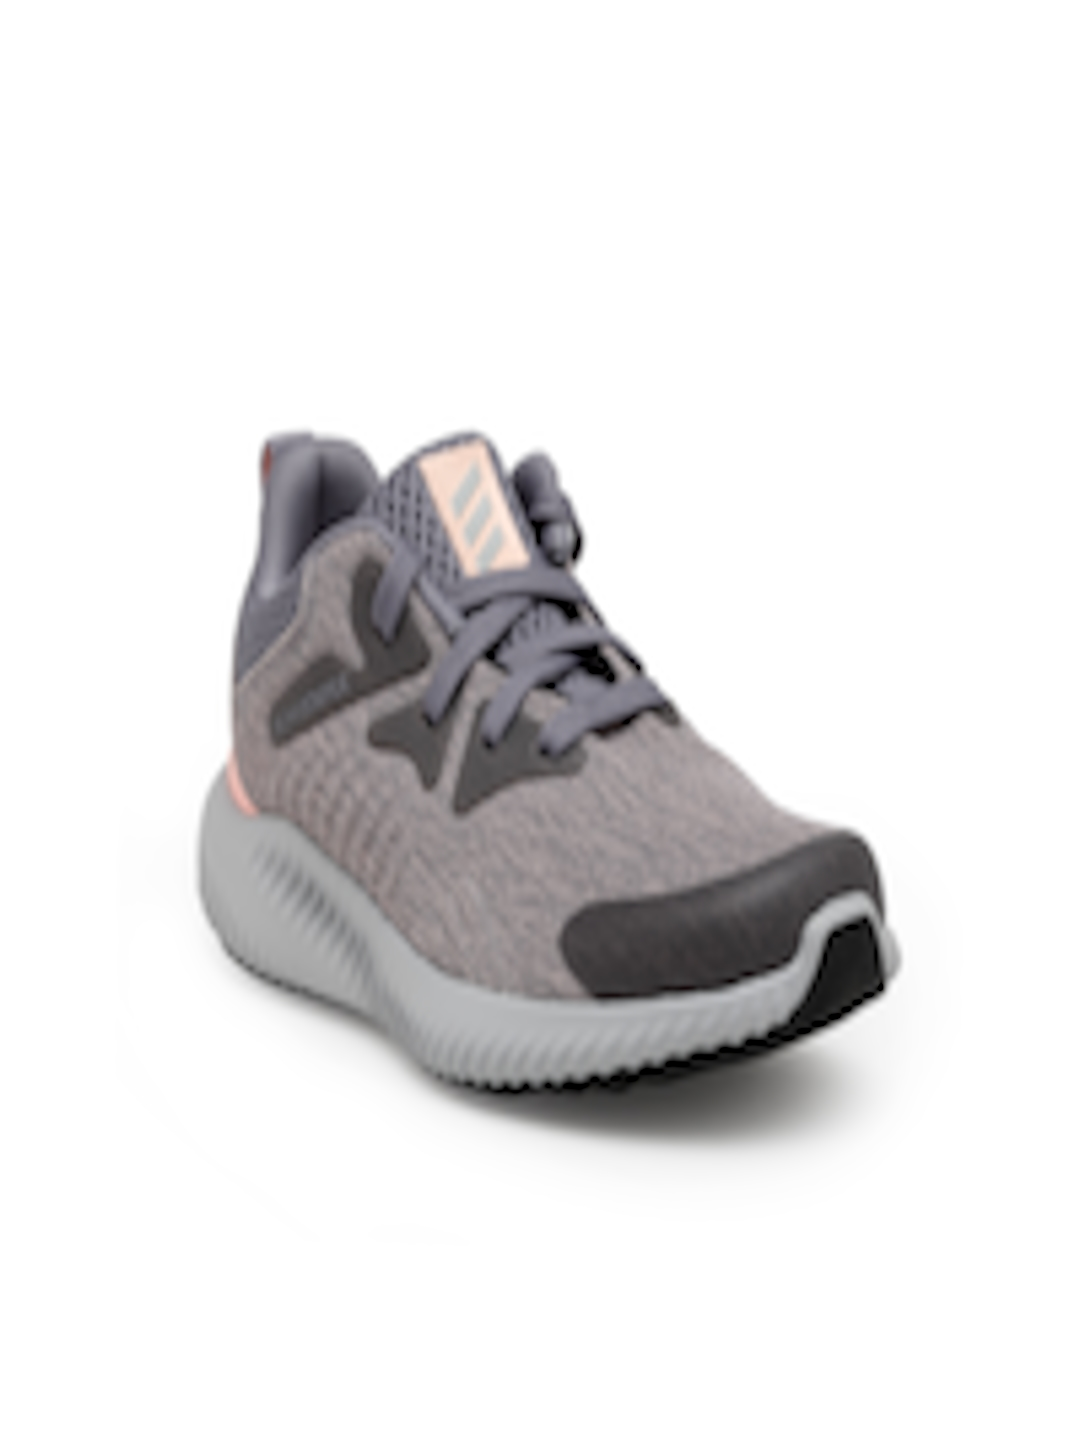 5bc3c4bb5 Buy ADIDAS Kids Brown Alphabounce Beyond C Running Shoes - Sports ...